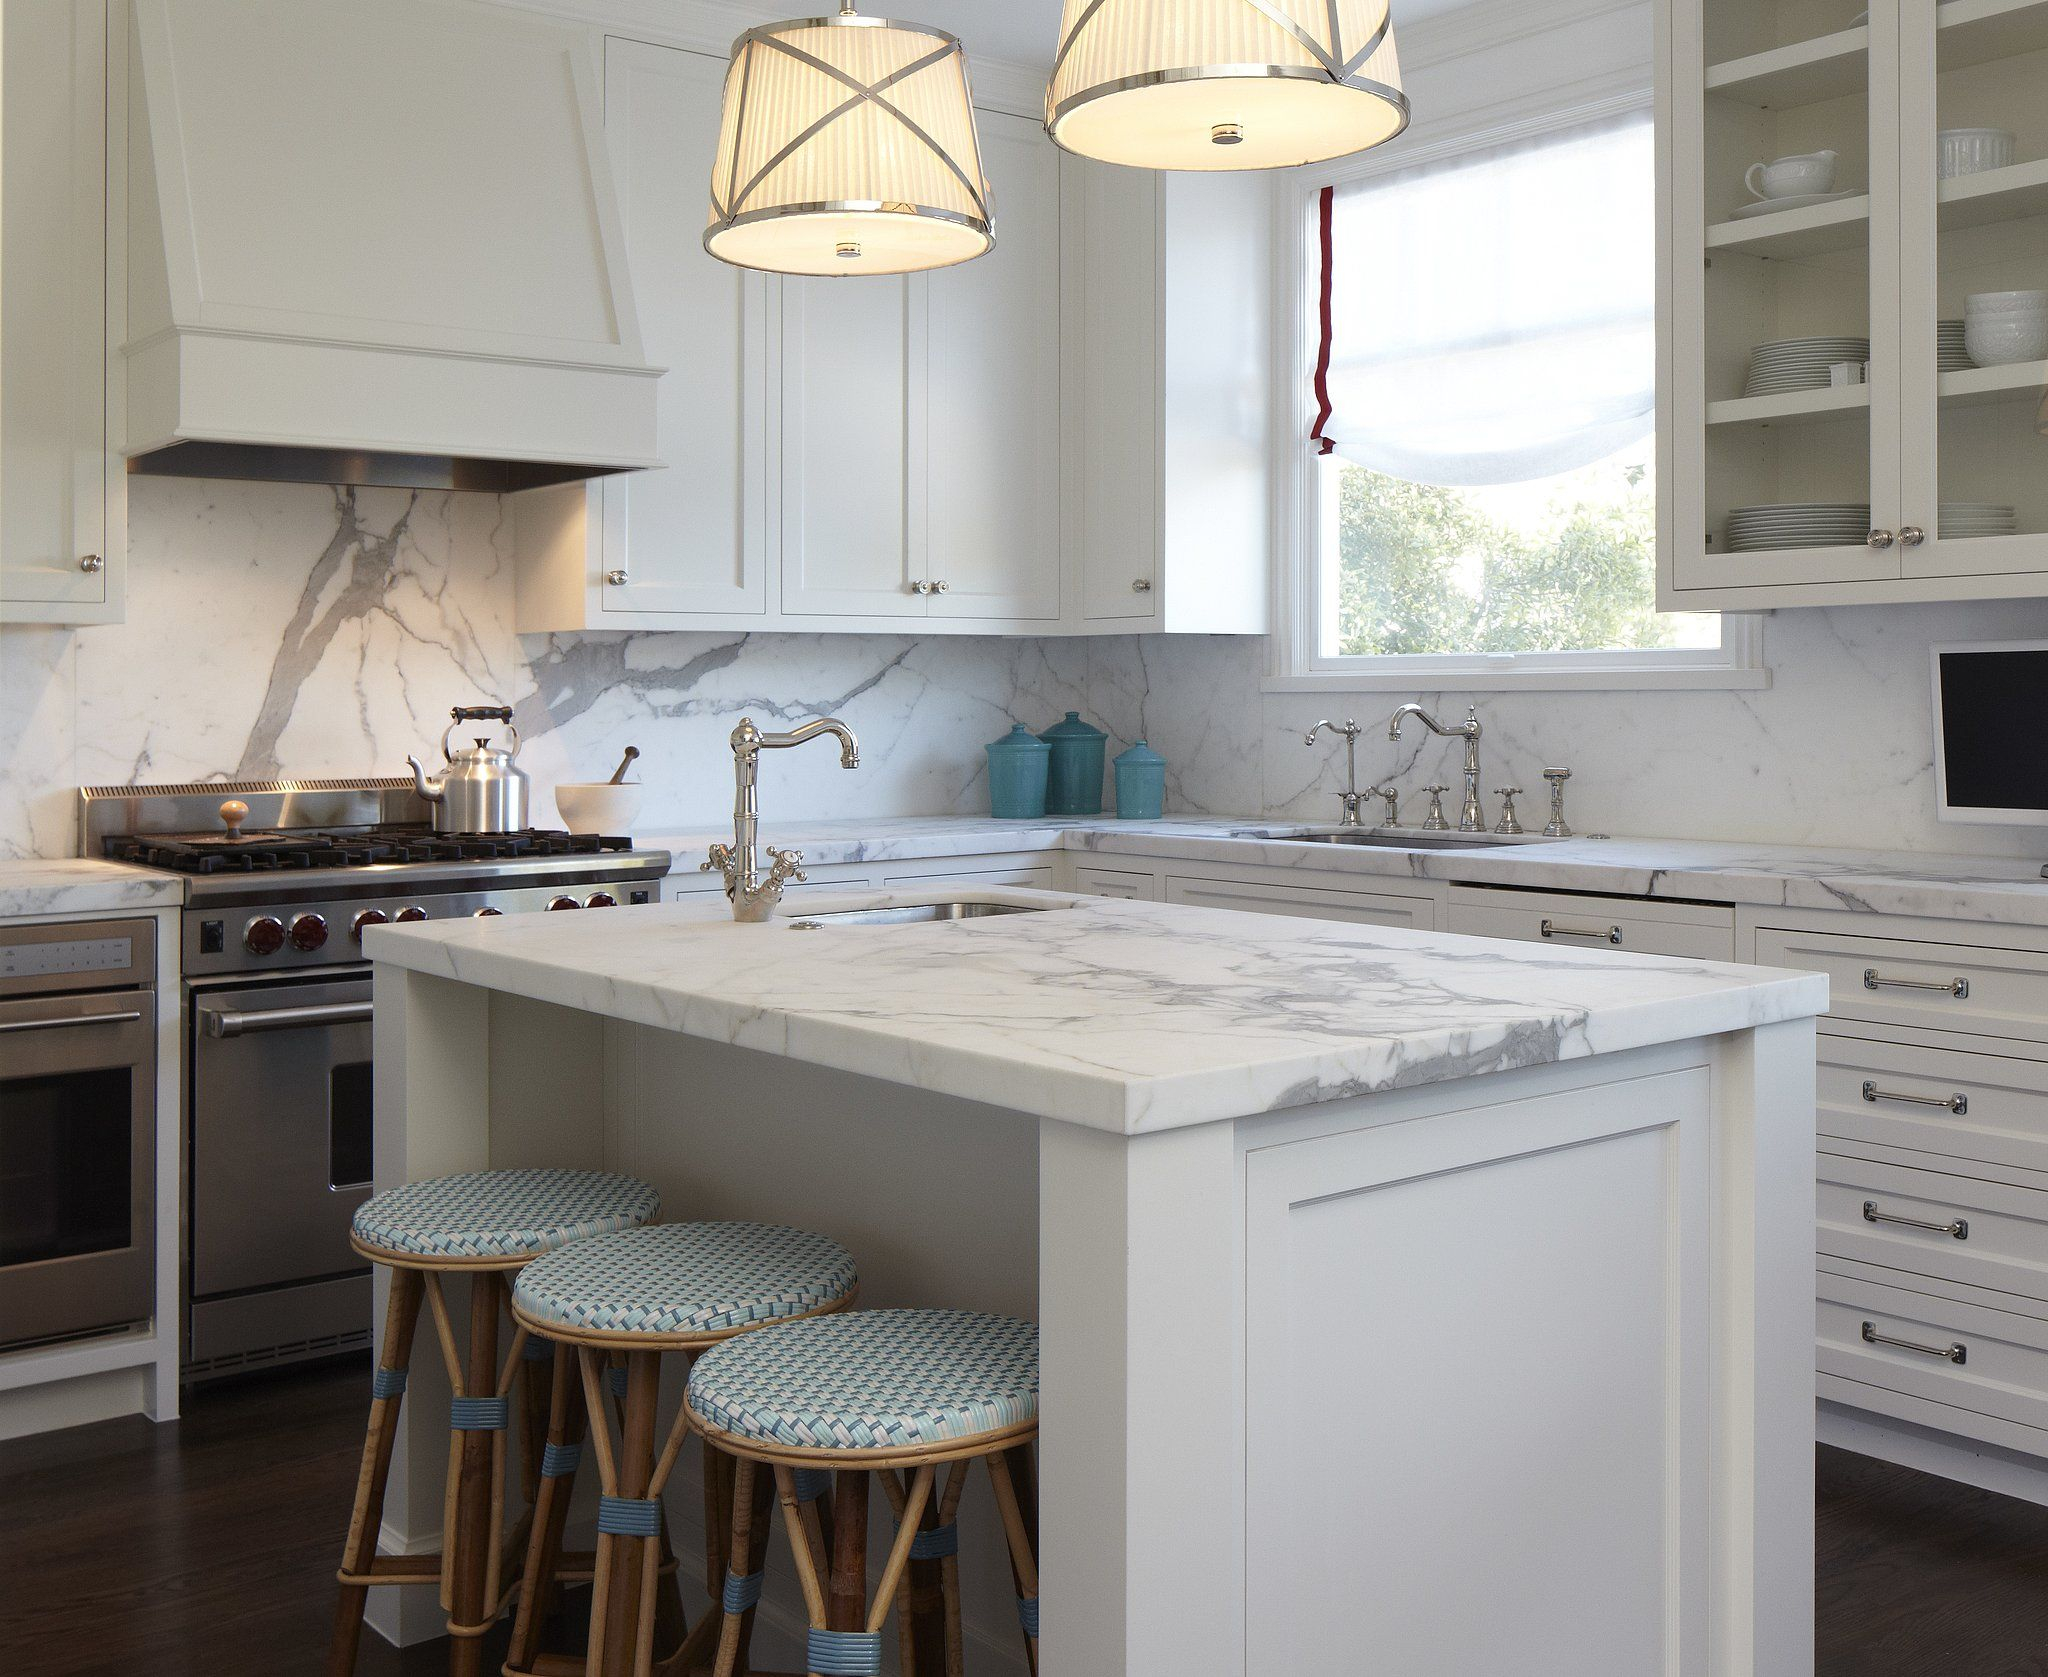 Marble Top Kitchen Work Table This San Francisco Home Is Filled With Dreamy Perks Small